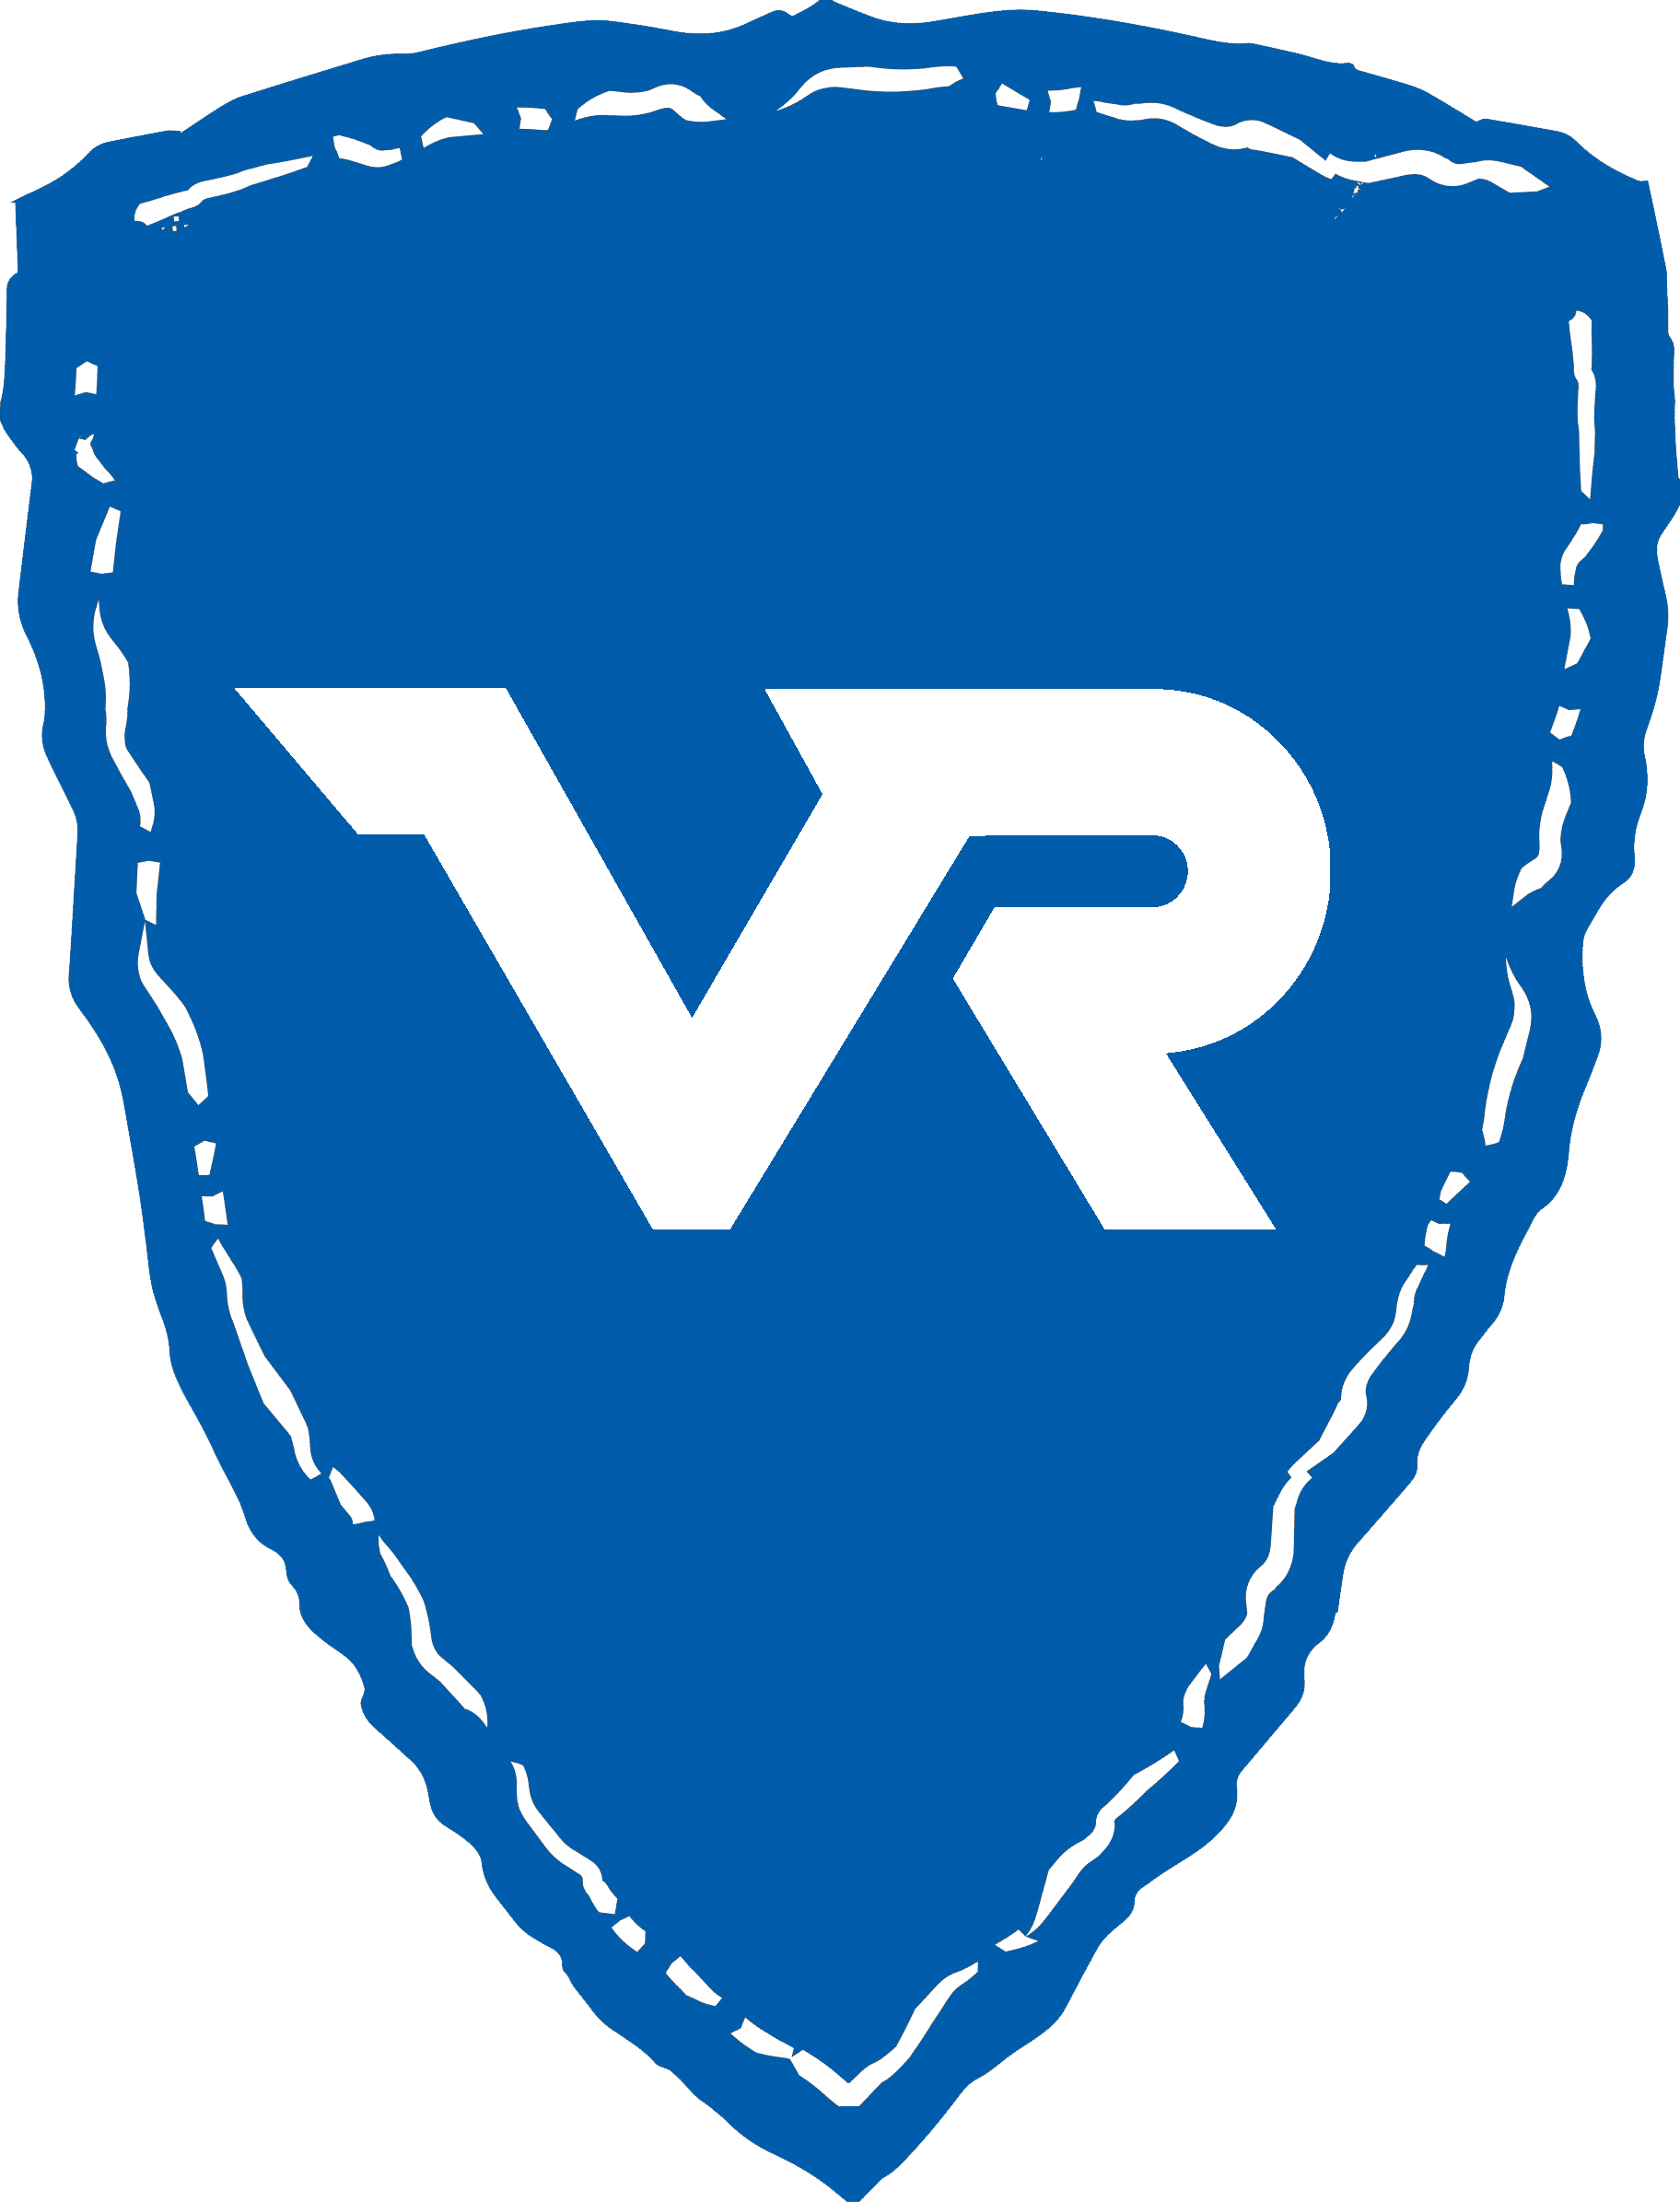 new-rough-shield-vr.png